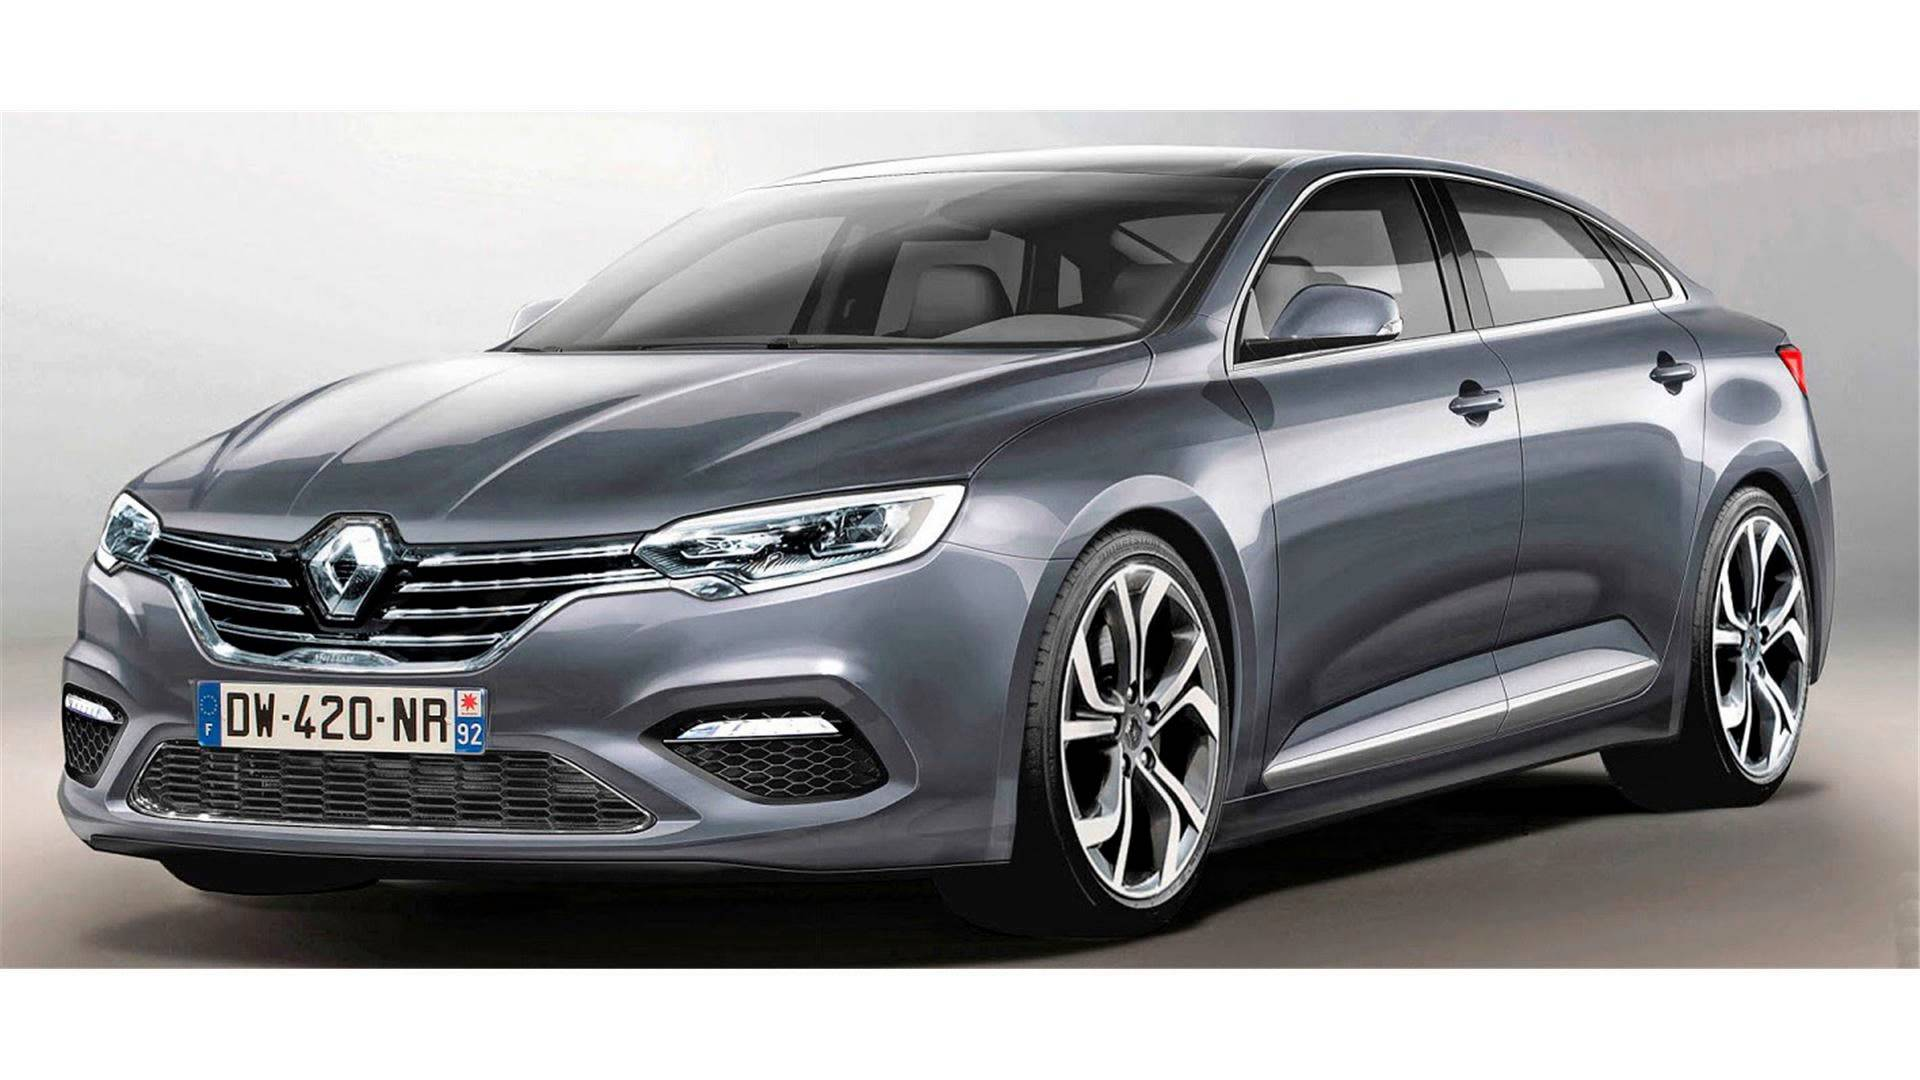 renault laguna iii coupe 2015 wallpaper